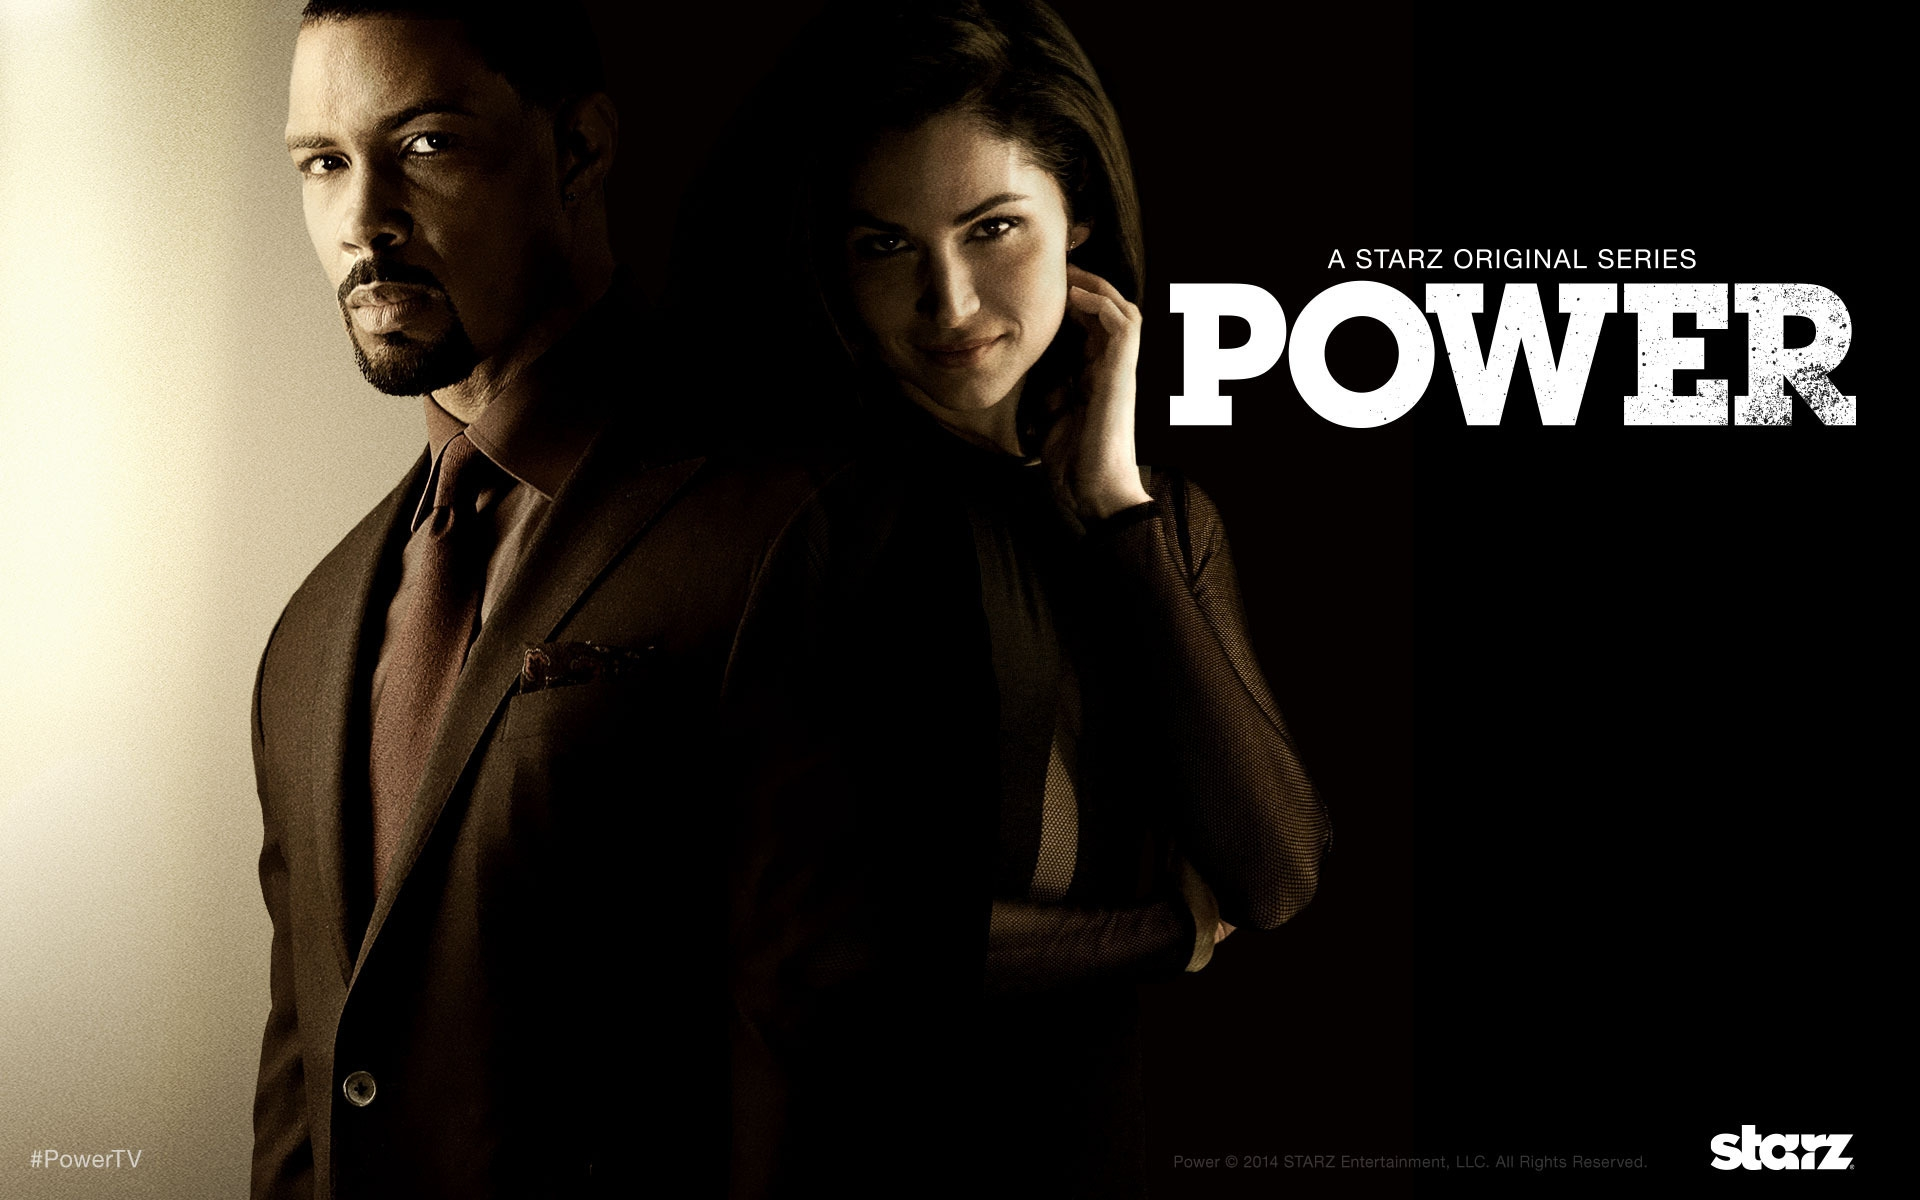 Power Season 2 for 1920 x 1200 widescreen resolution